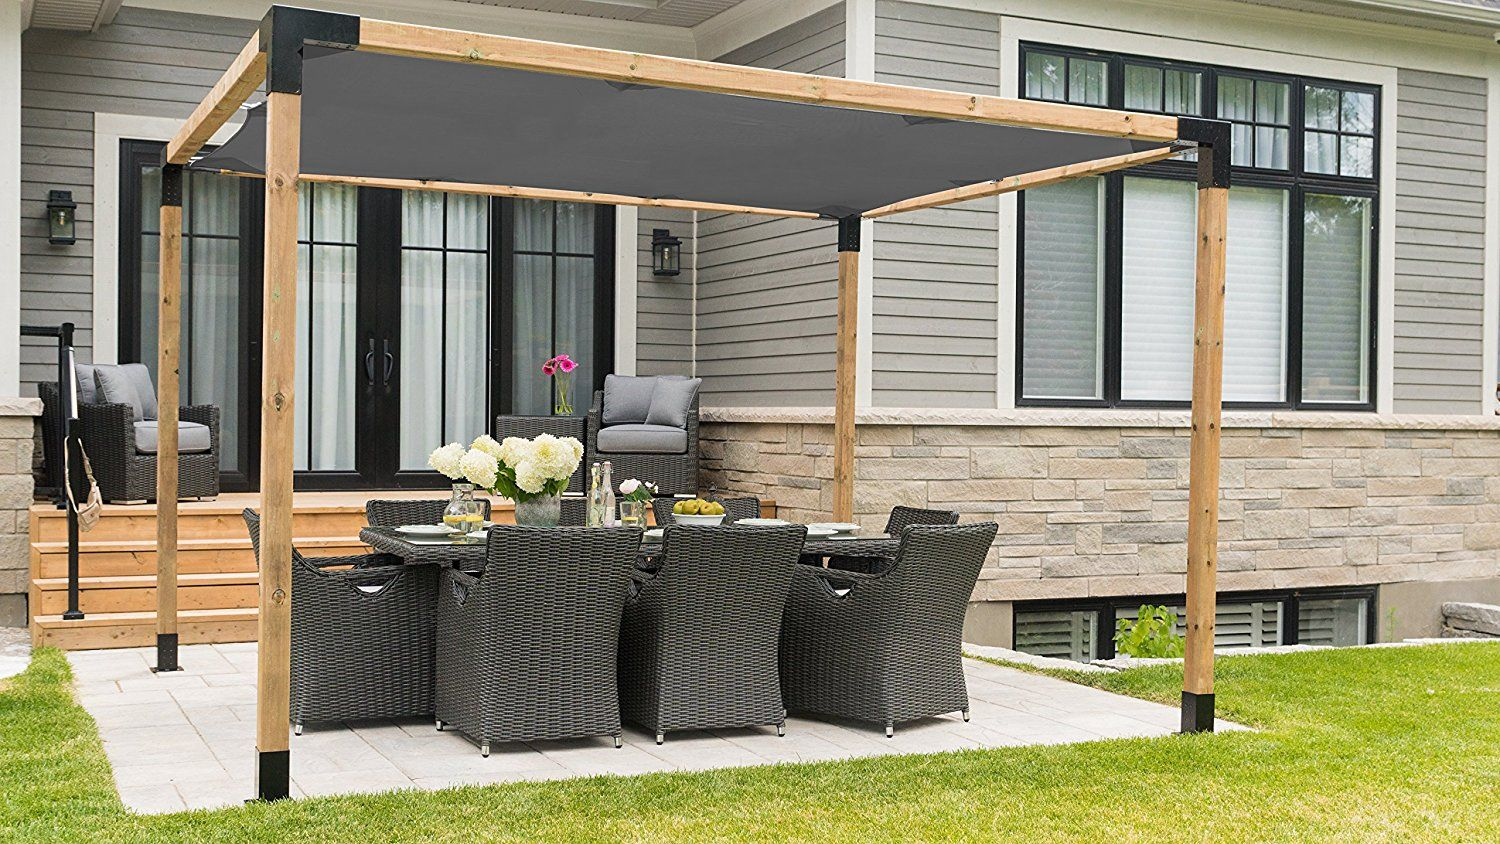 Pergola Kit Easy Assembly Pergola With Shade Sail 10x10 Matt Black Modern Design Unique Sand Textured Ful Outdoor Pergola Building A Pergola Pergola Plans